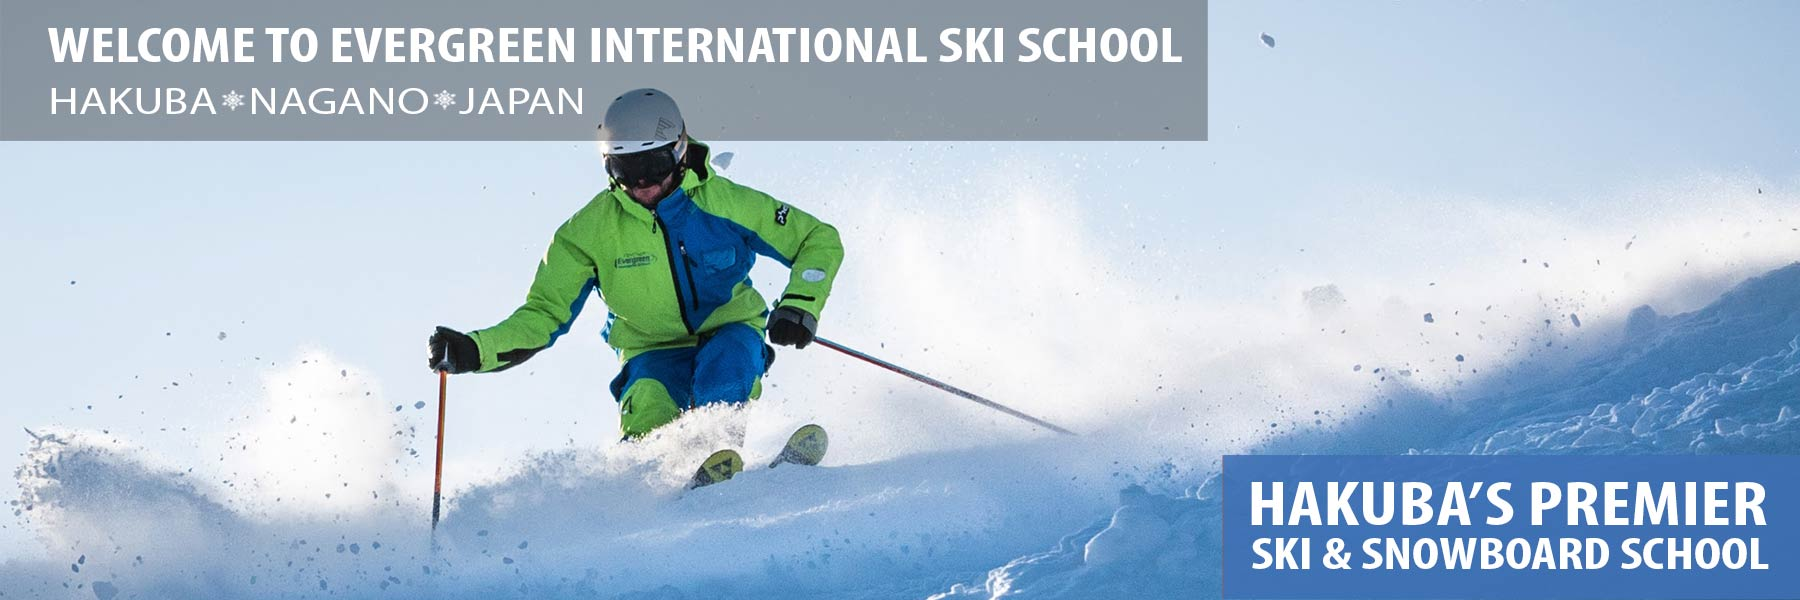 hakuba ski school header - powder skiing in japan